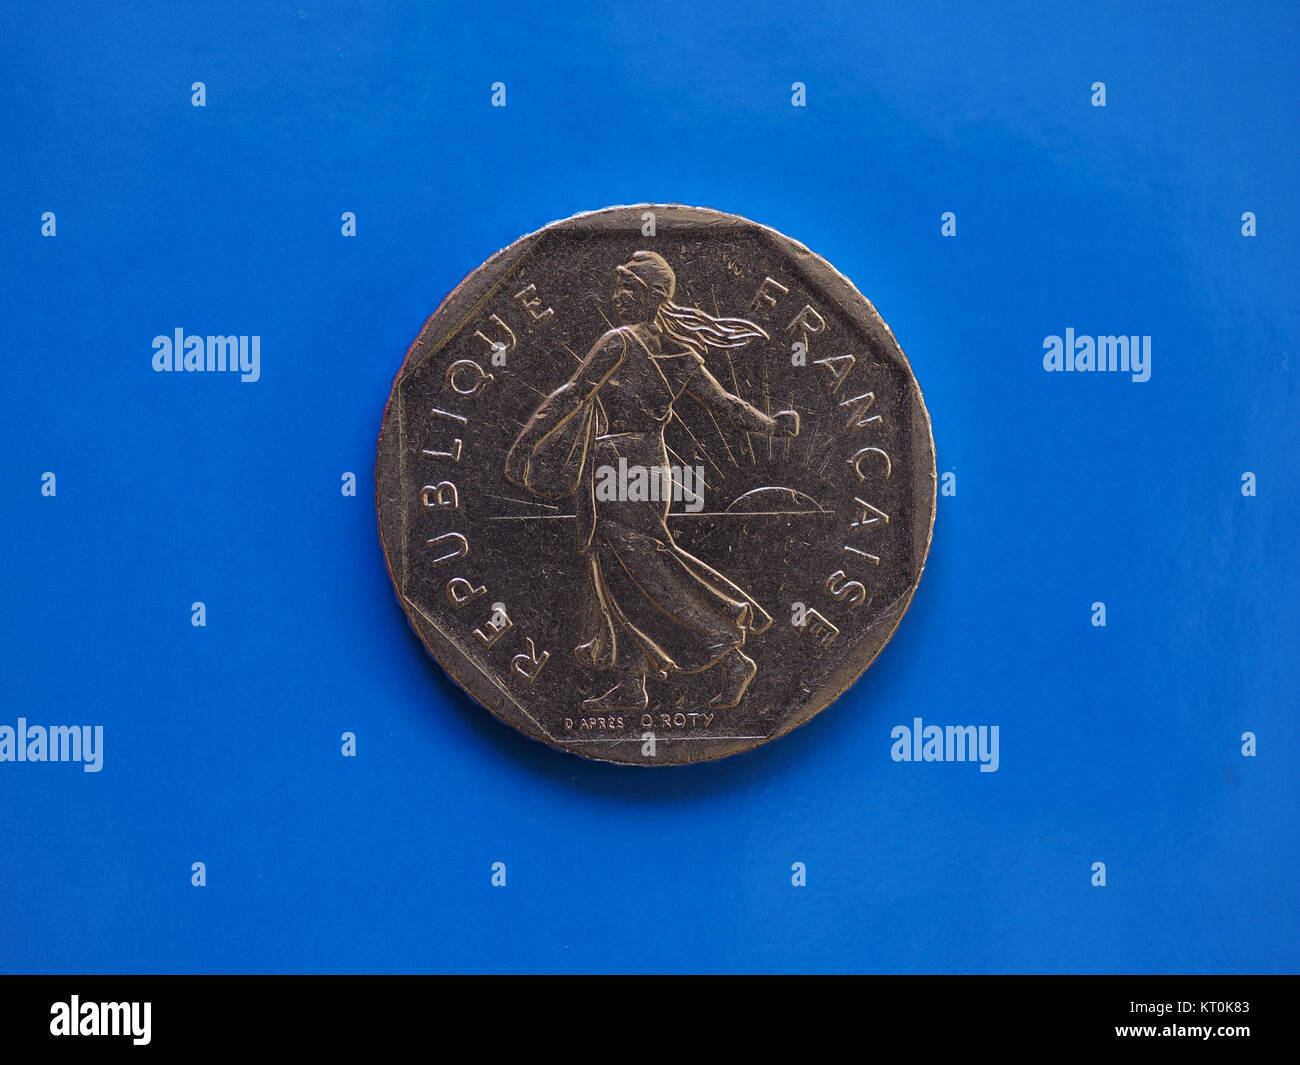 2 francs coin, France over blue - Stock Image